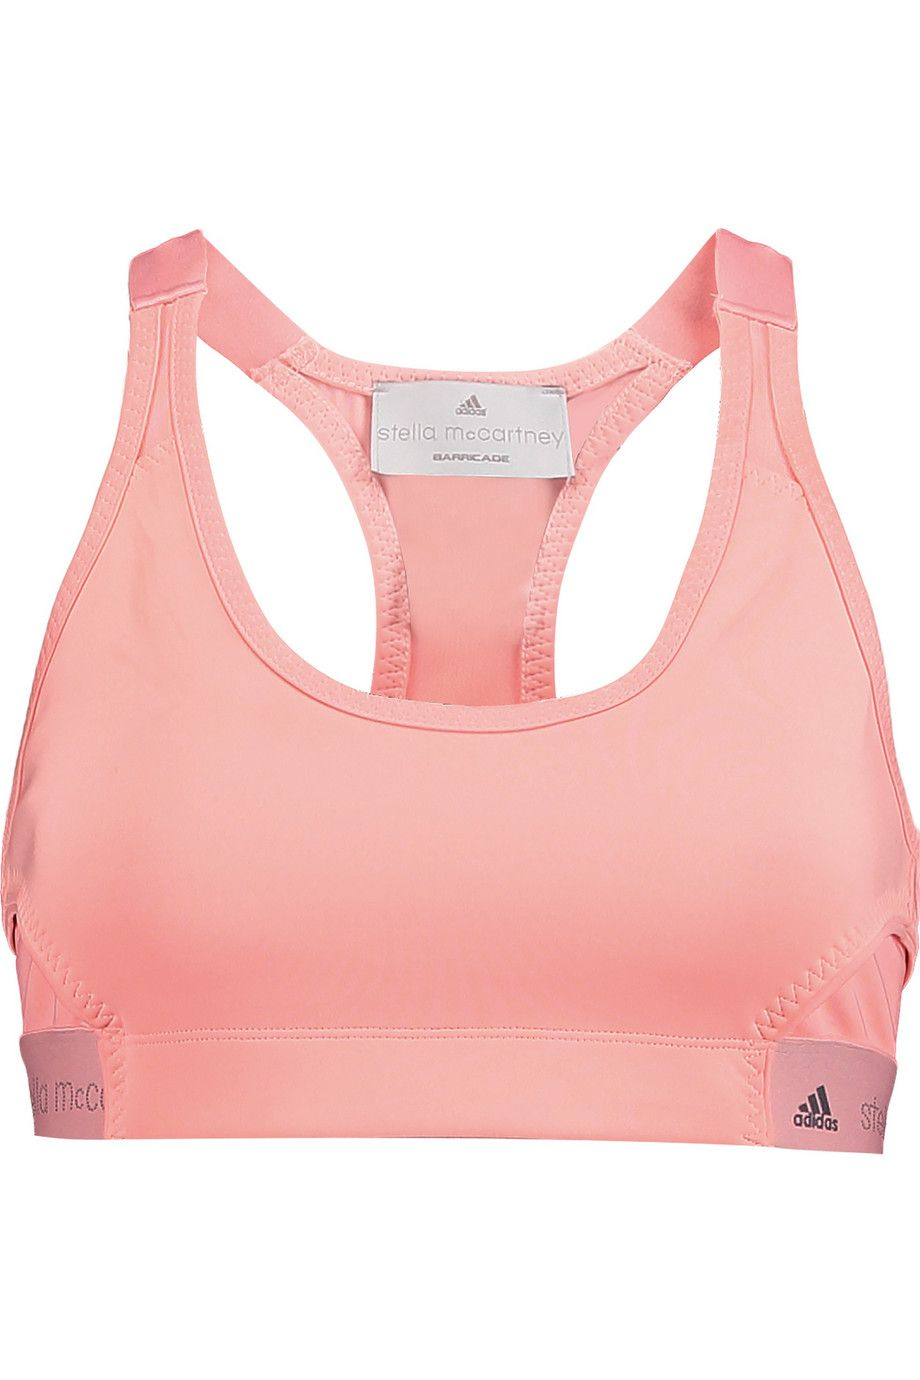 Adidas by Stella McCartneyThe Pull On stretchjersey